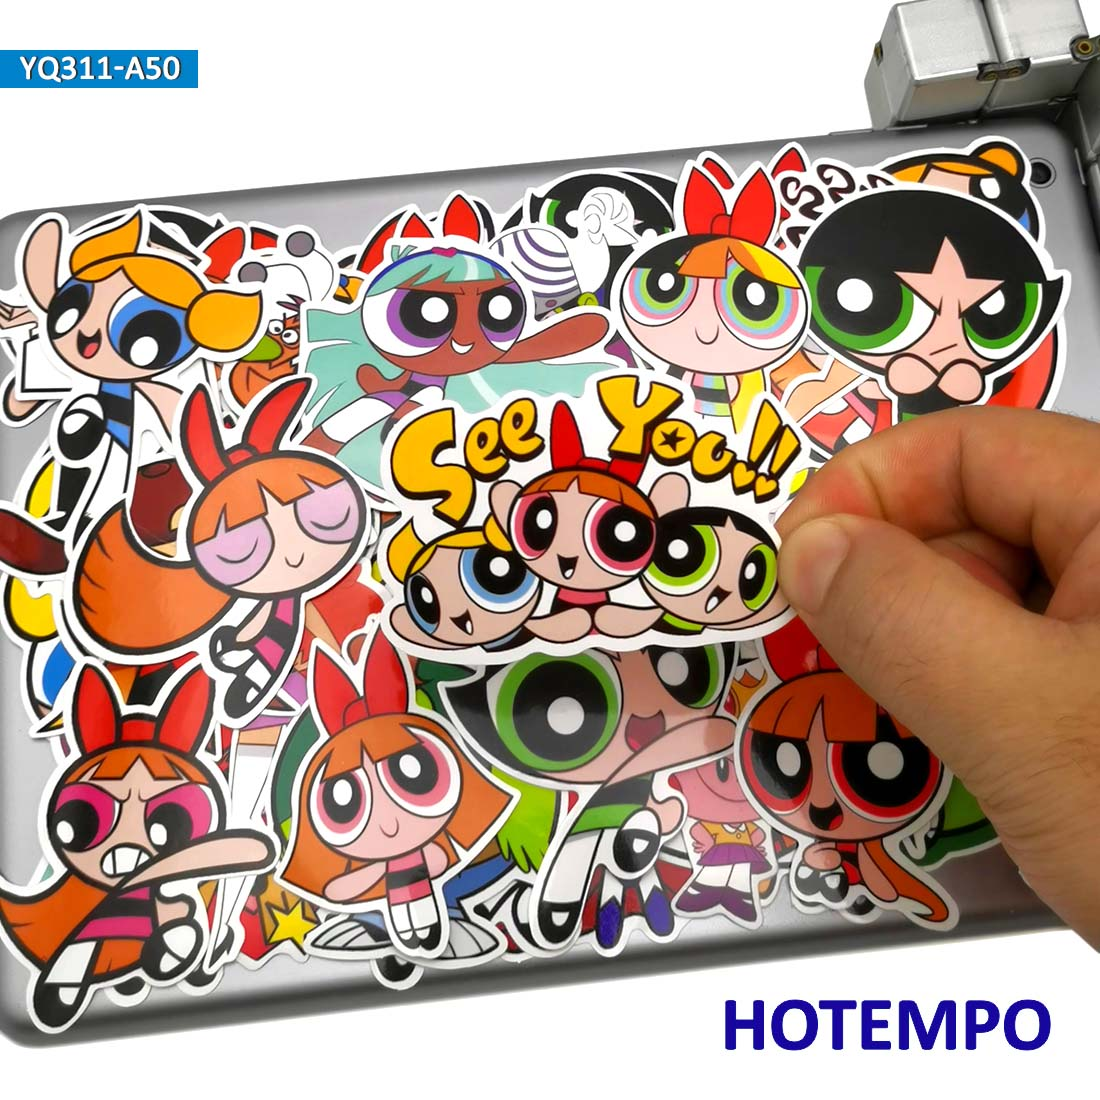 50pcs Cute Anime PPG Blossom Bubbles Buttercup Stickers Toys For Kids Stationery Mobile Phone Laptop Suitcase Cartoon Stiickers